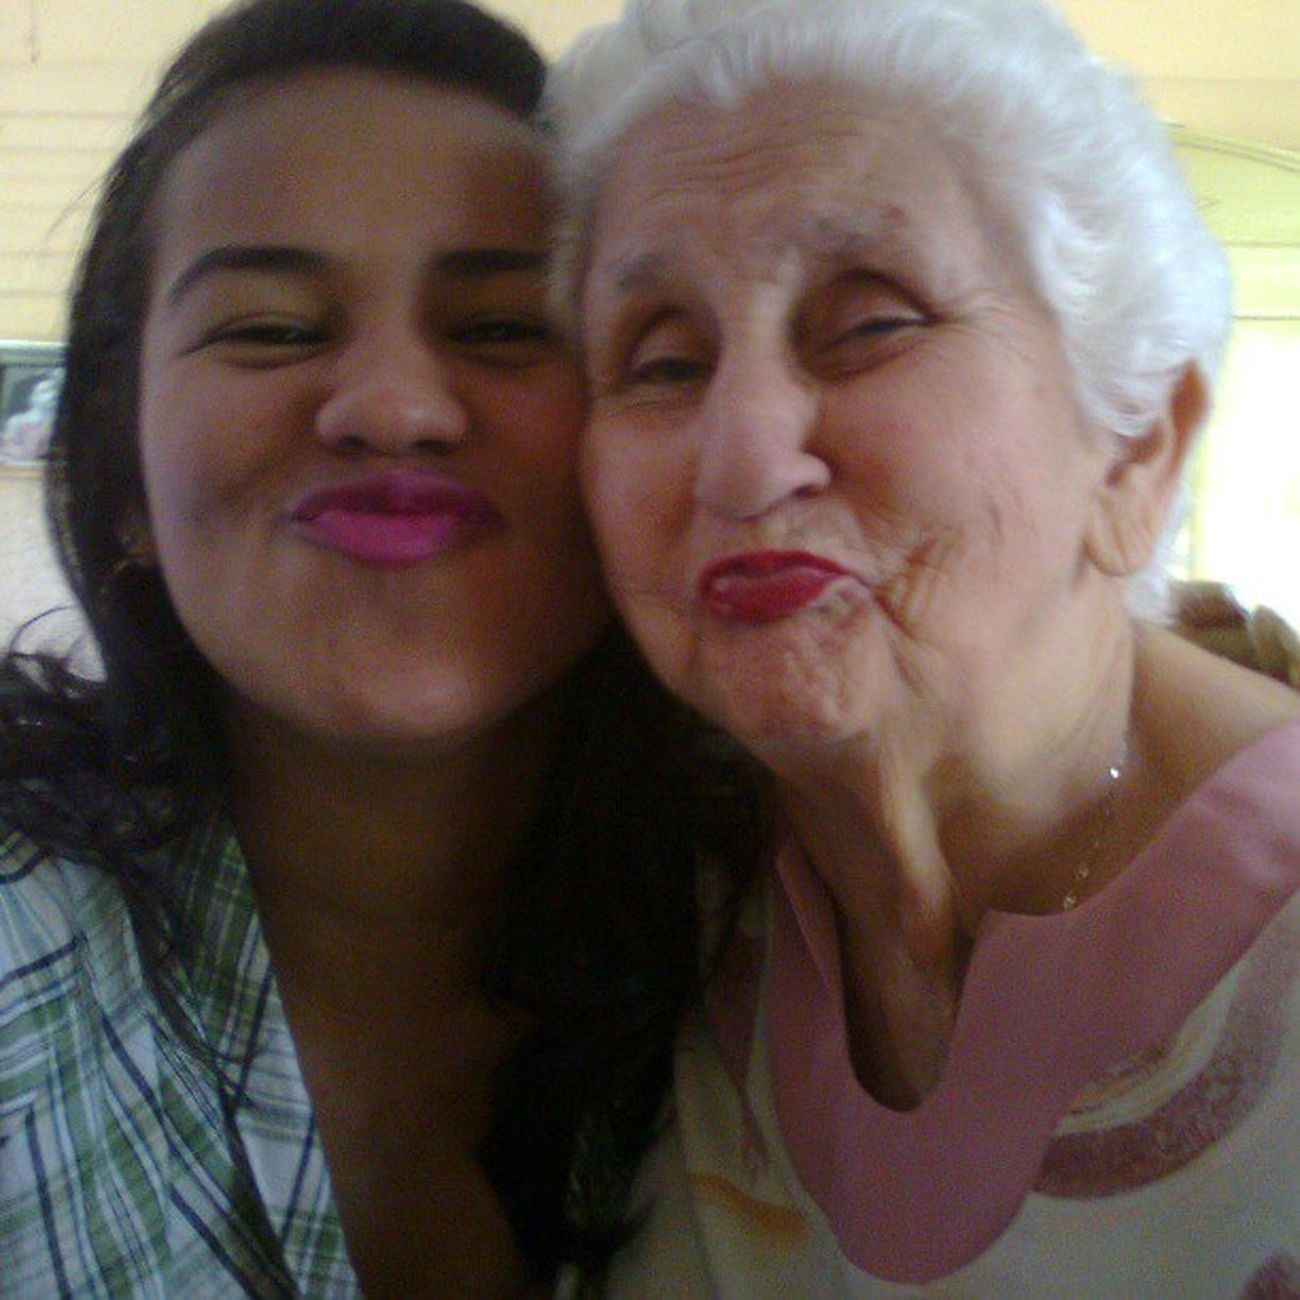 Me and grandma being cool rocking the duck face HAHAHA gotta love her <3 TBT  Grandma Wecool Rockingit throwbackthursday oldphoto laamo tanbella abuela